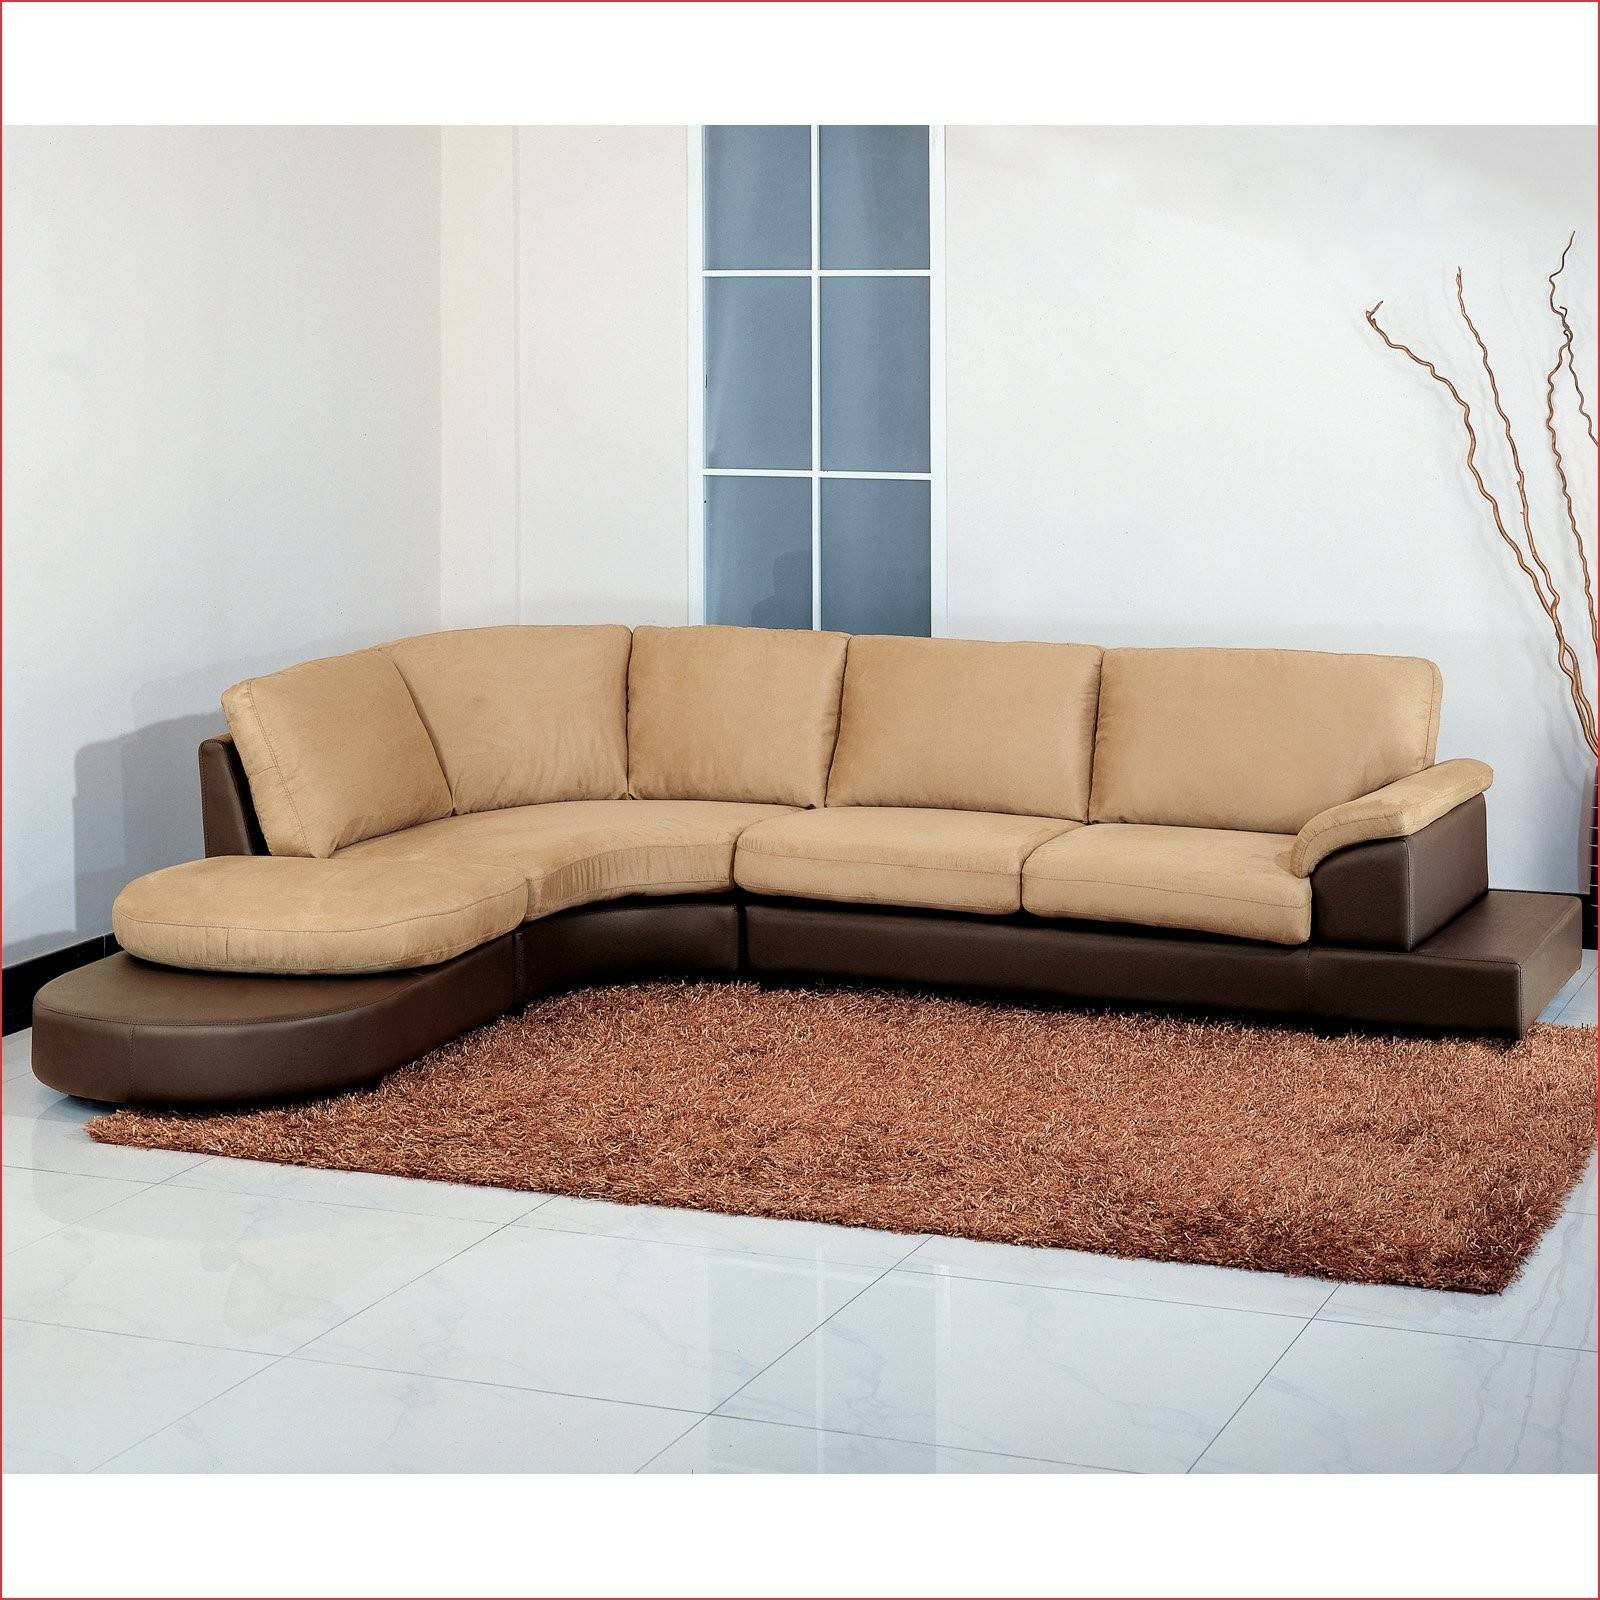 2017 Best of Chai Microsuede Sofa Beds